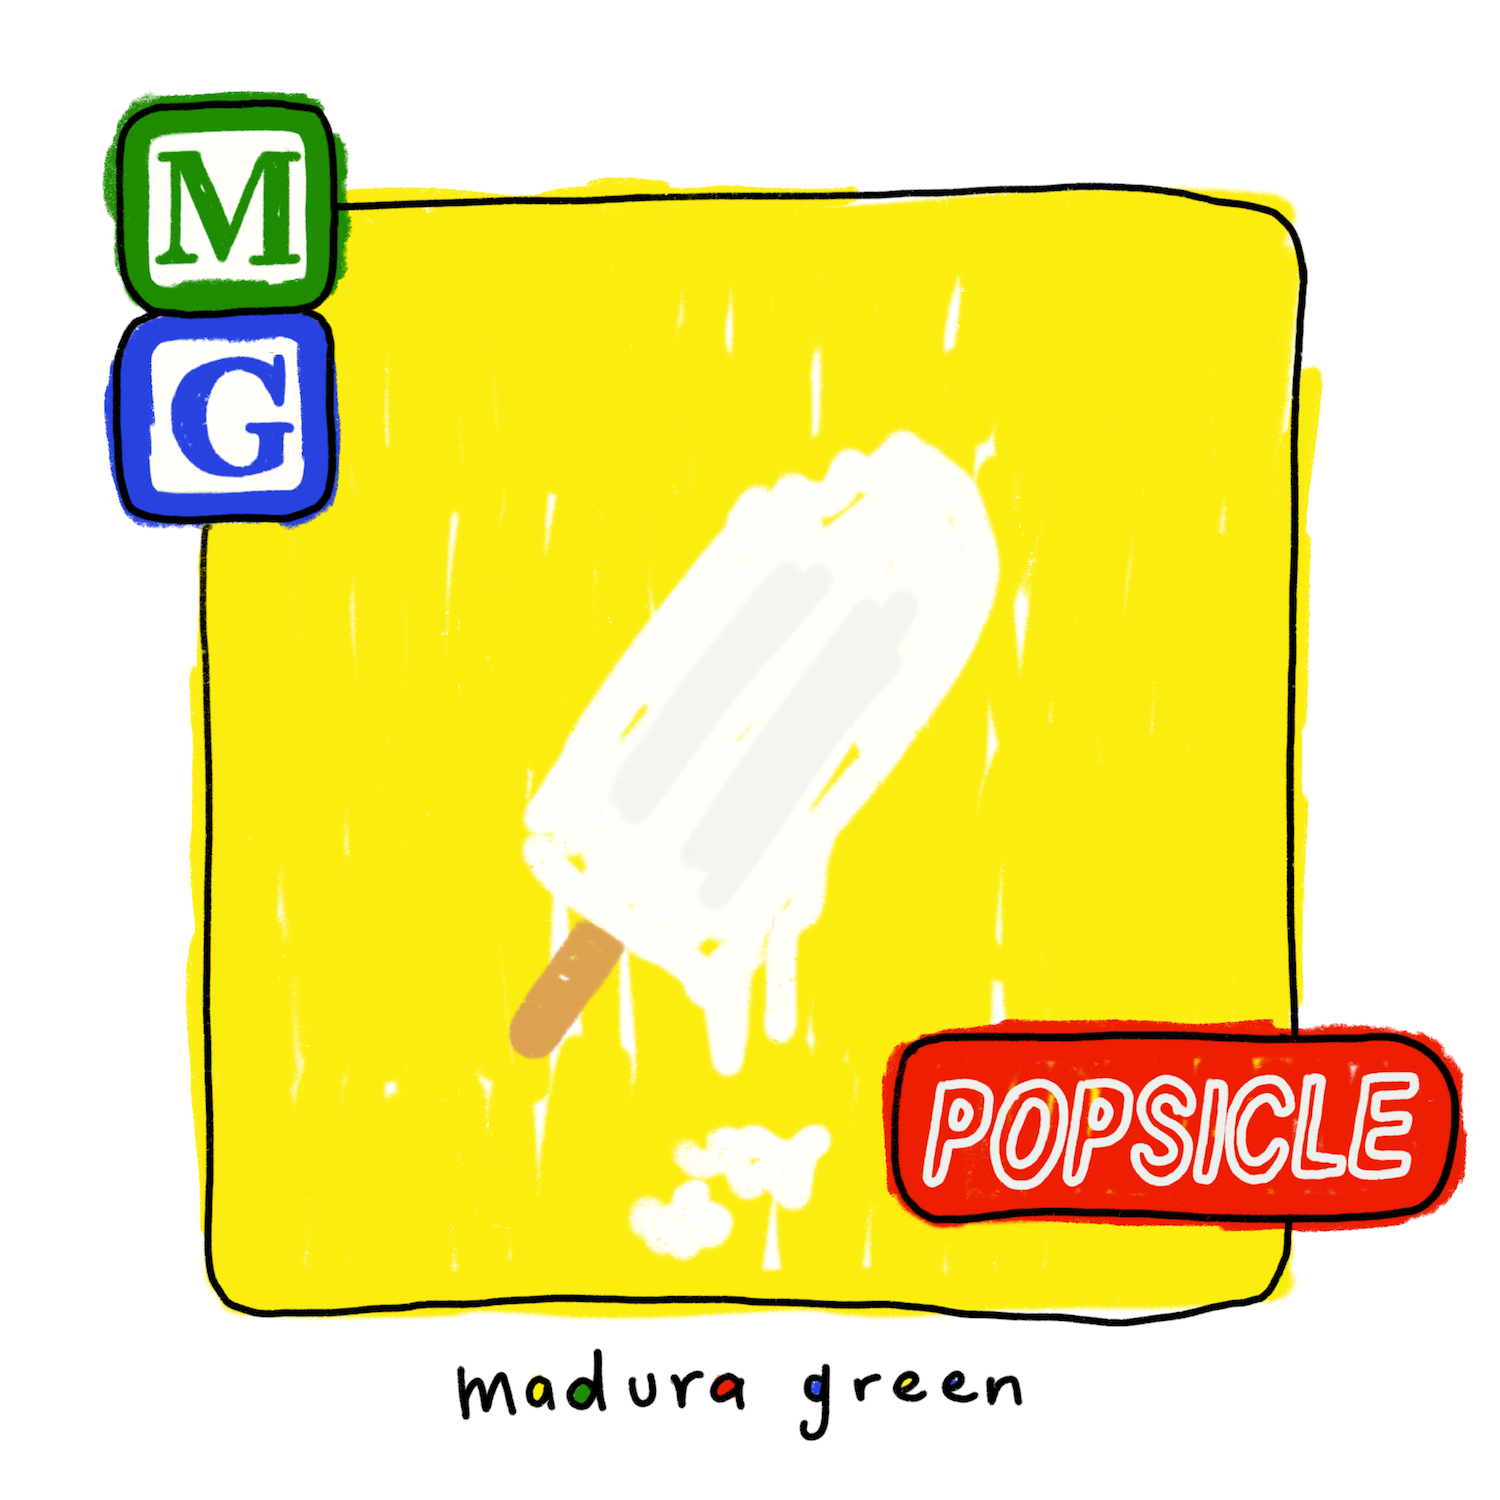 Madura Green Popsicle